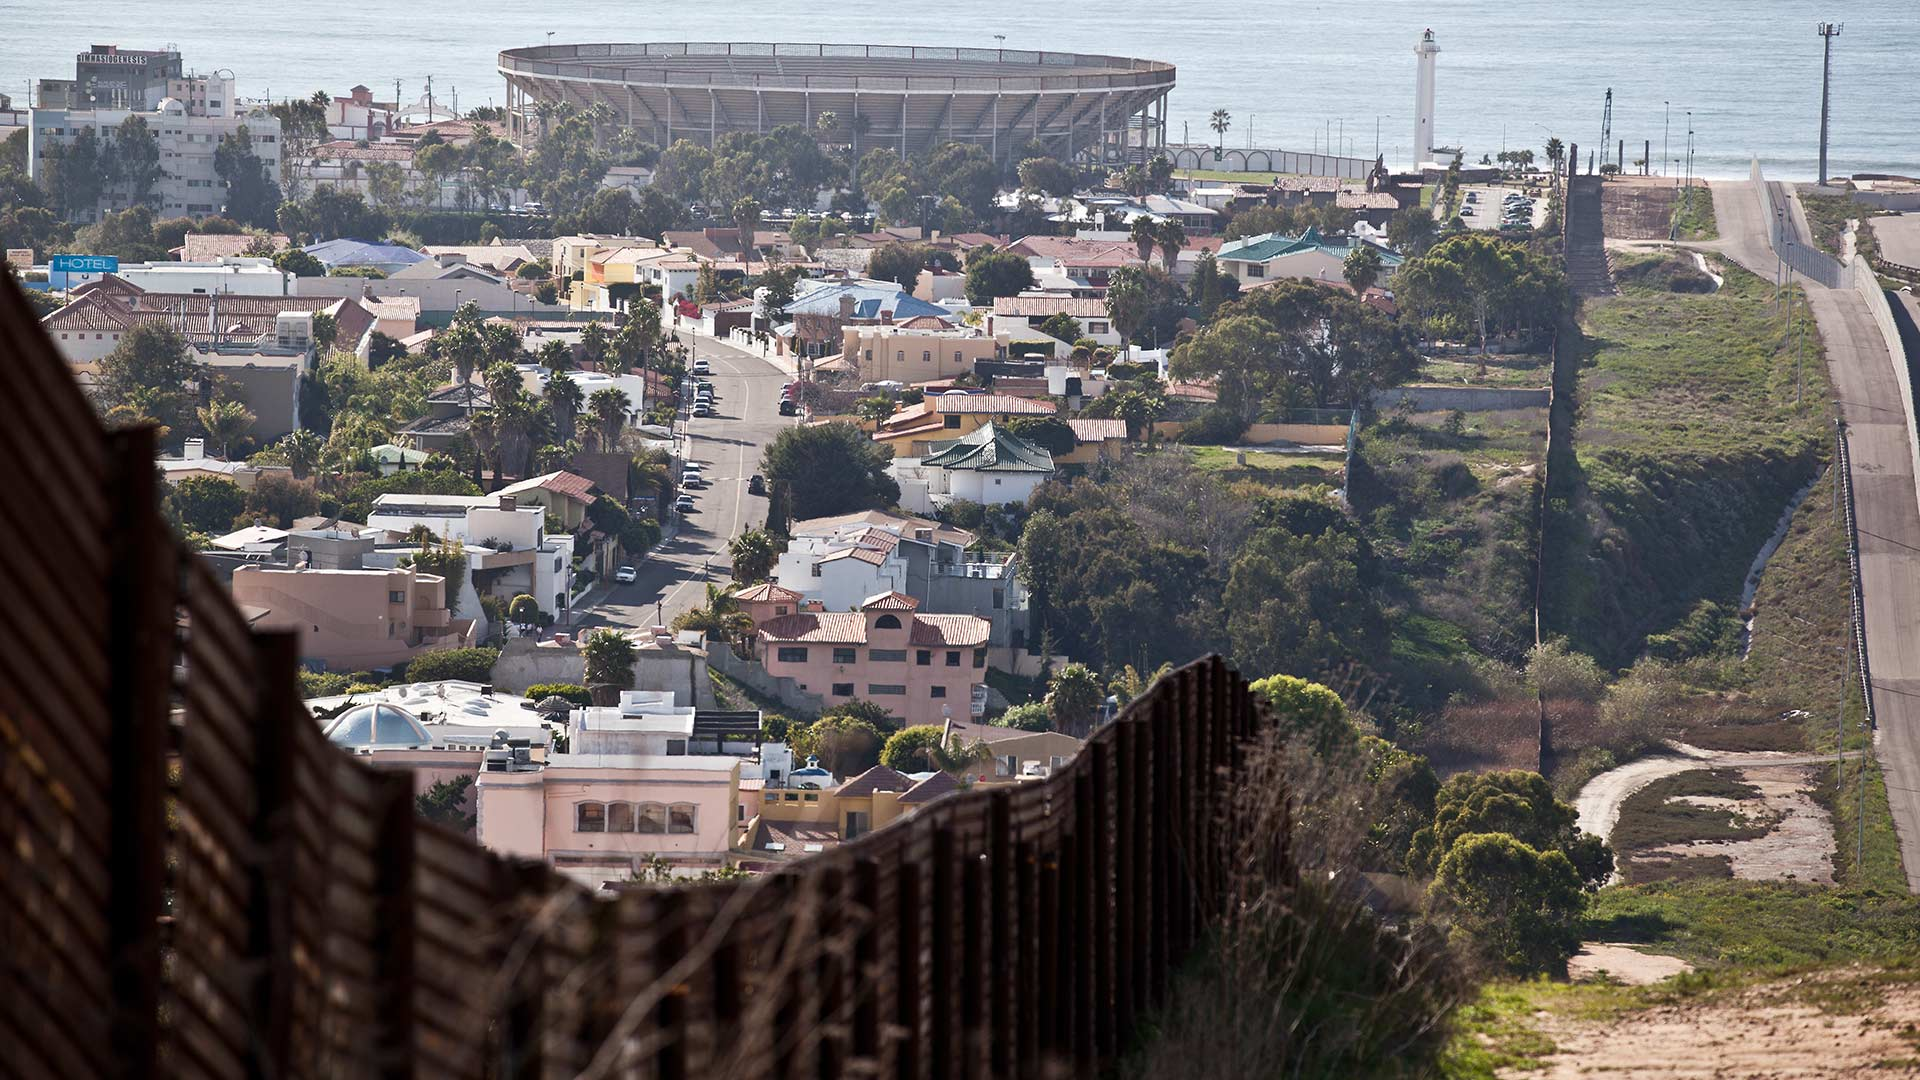 The international line between Mexico and the U.S. ends at the Pacific Ocean, with Tijuana on the left.